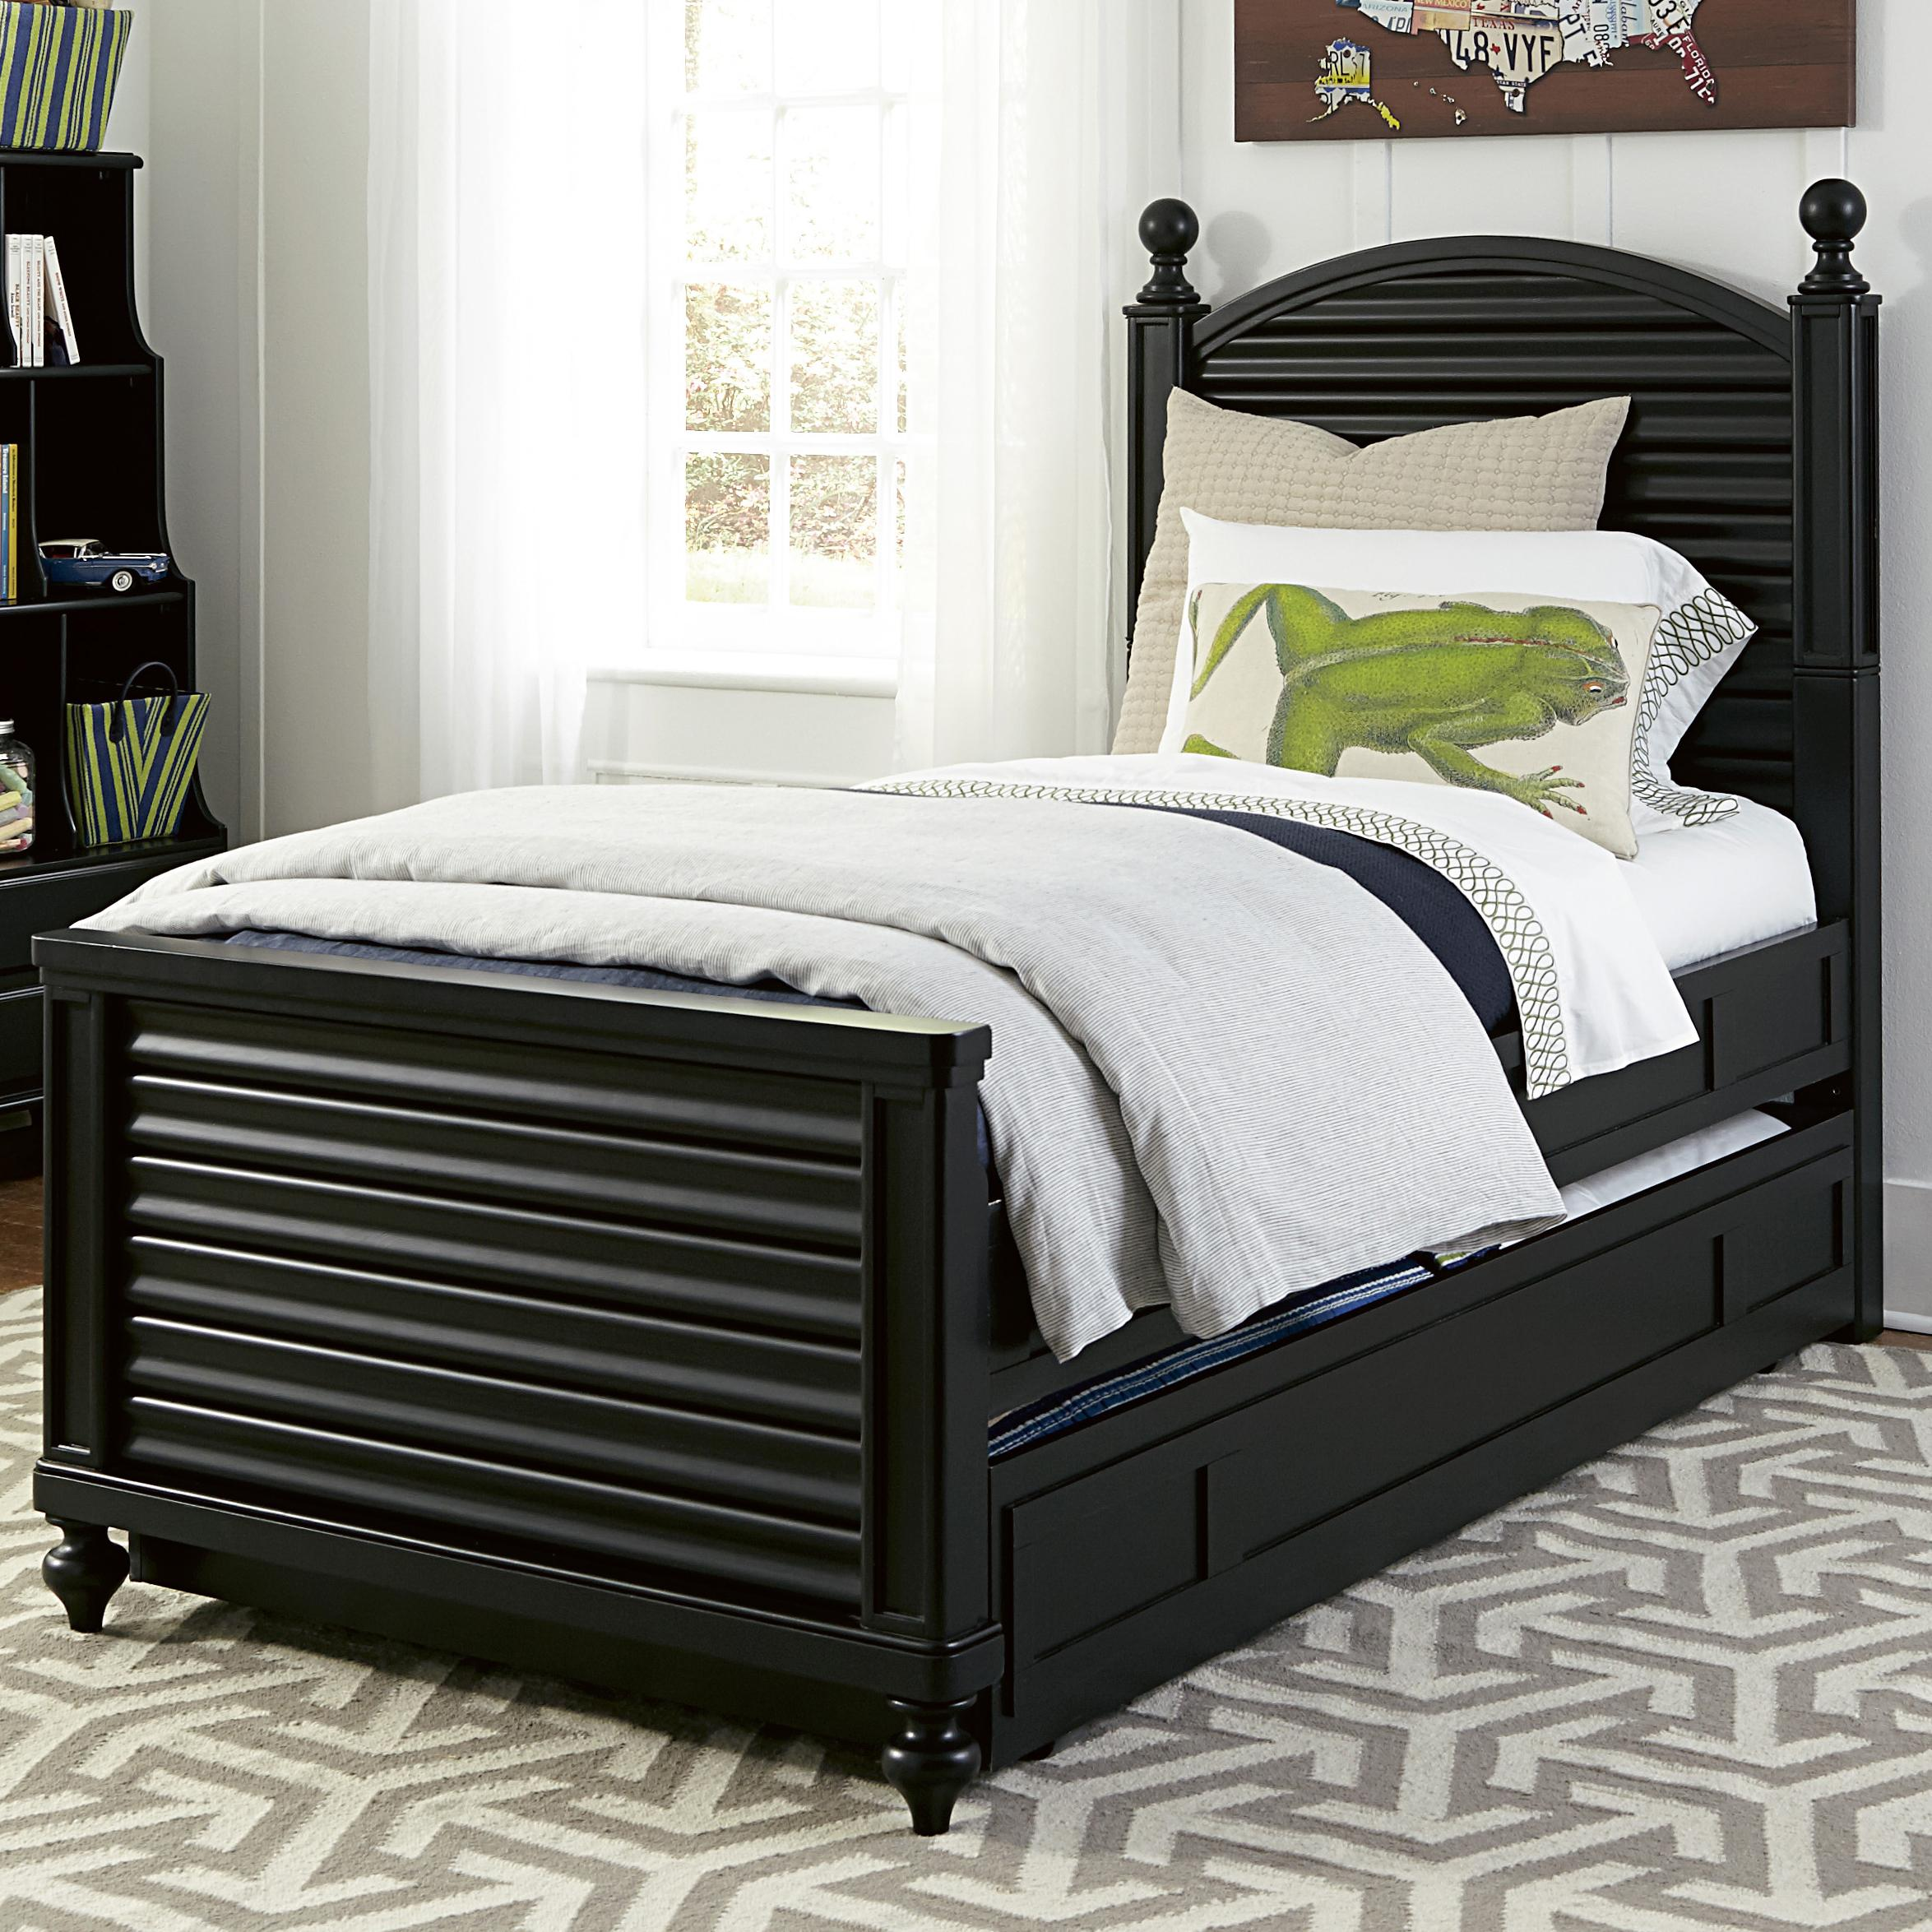 Smartstuff Black and White Full Reading Bed with Trundle - Item Number: 437B043+060